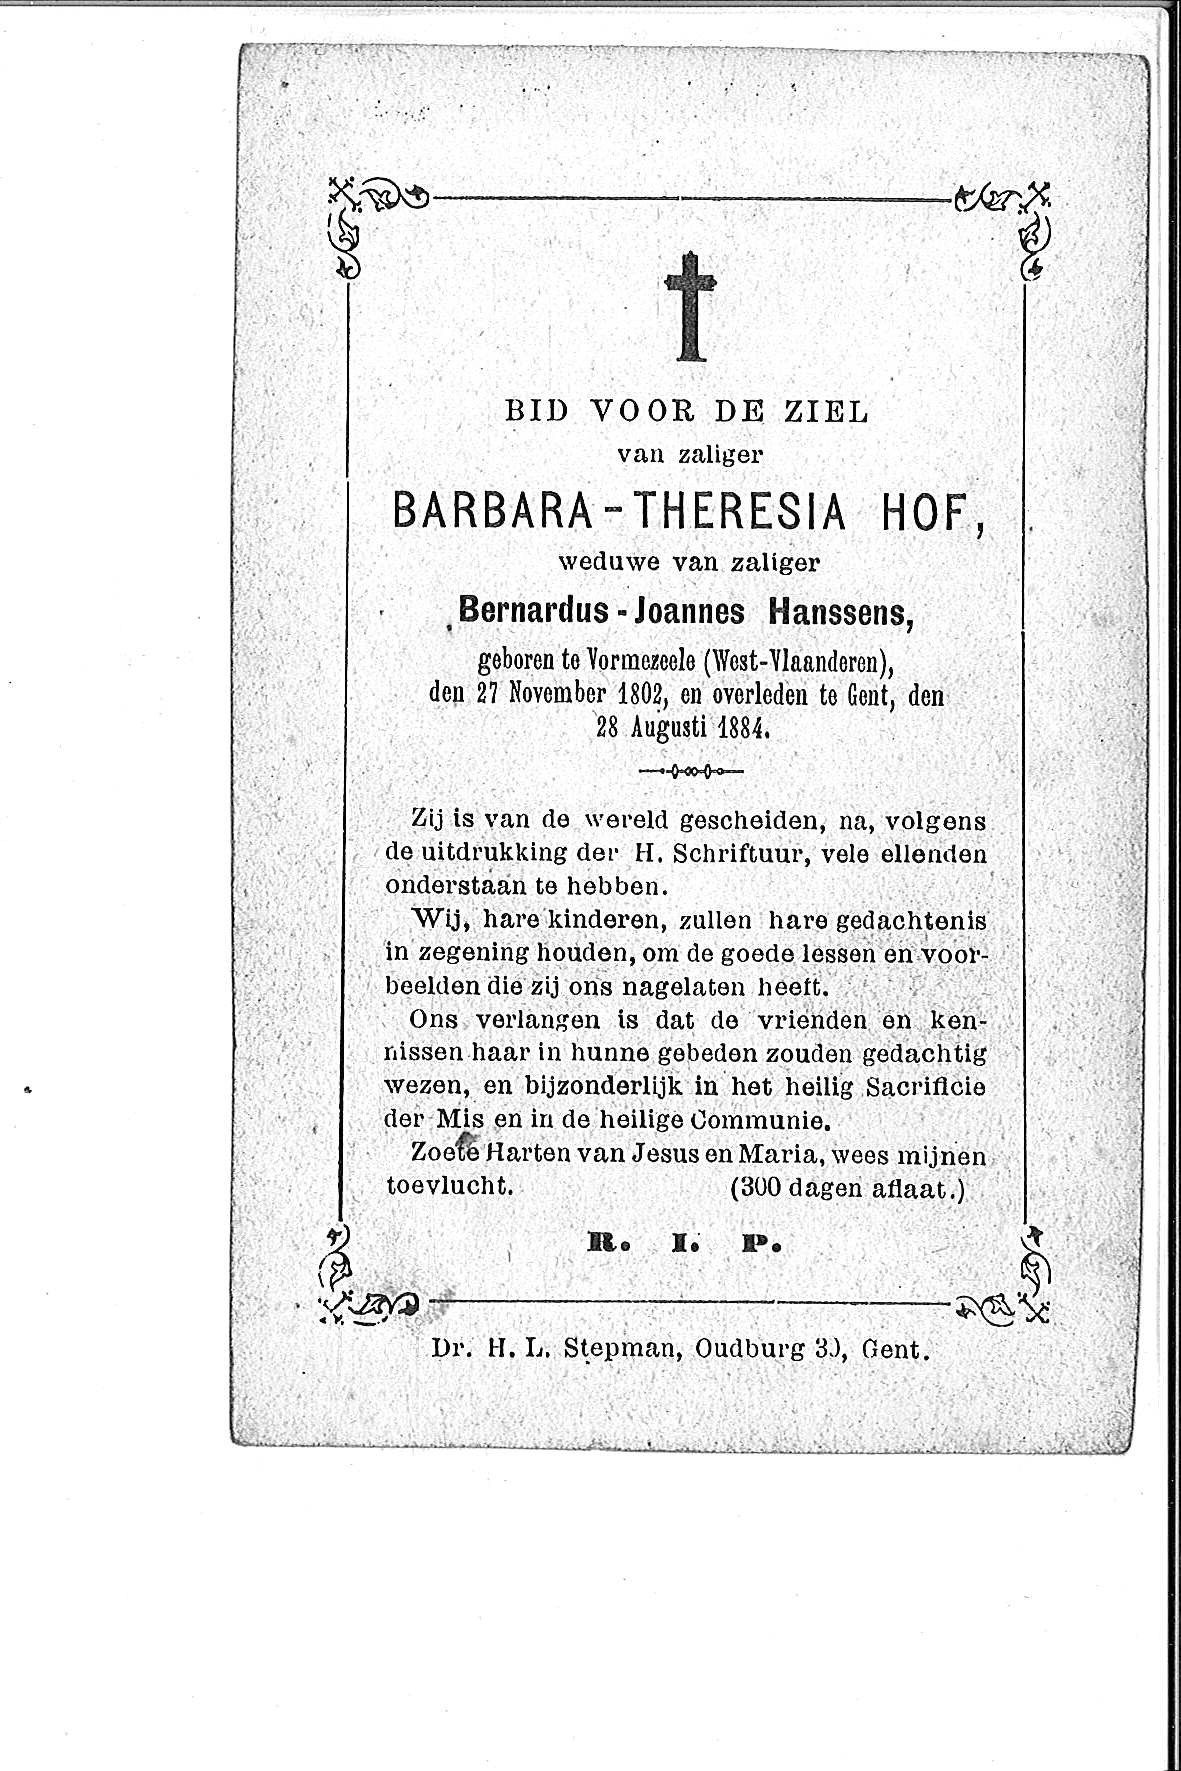 Barbara-Theresia(1884)20151002161158_00014.jpg